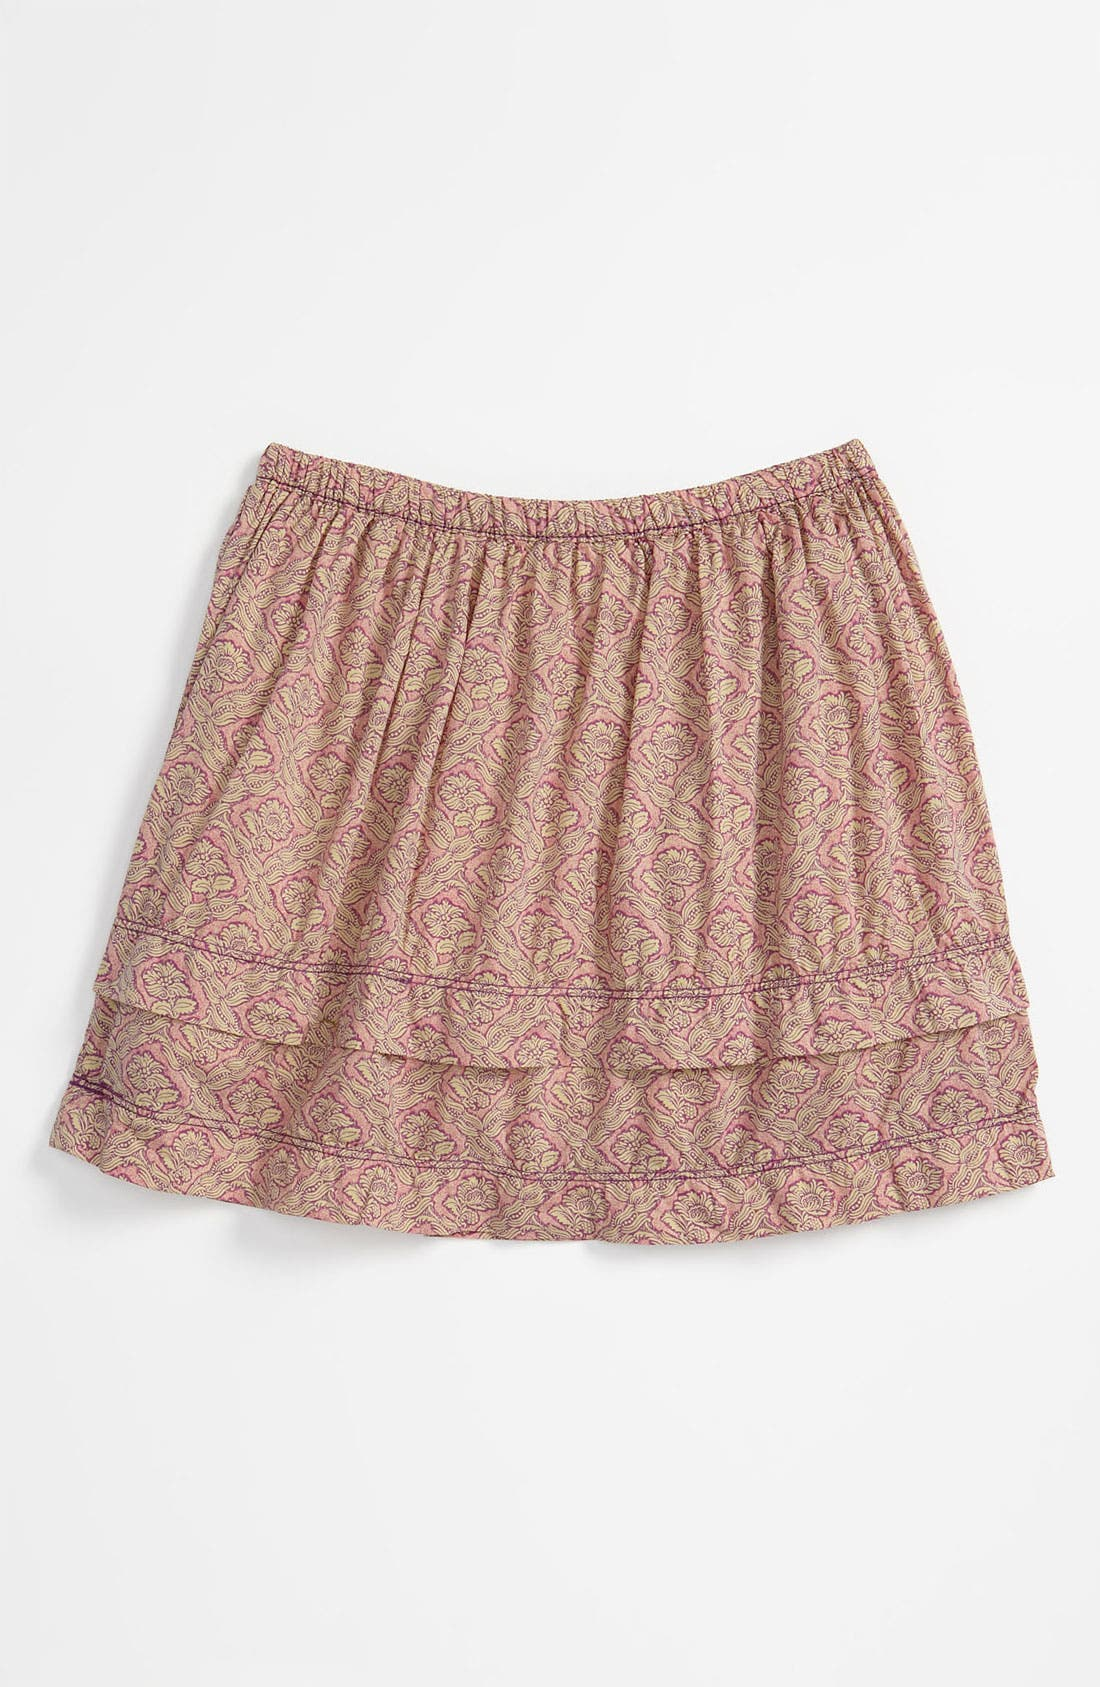 Alternate Image 1 Selected - Peek 'Pauline' Skirt (Toddler, Little Girls & Big Girls)